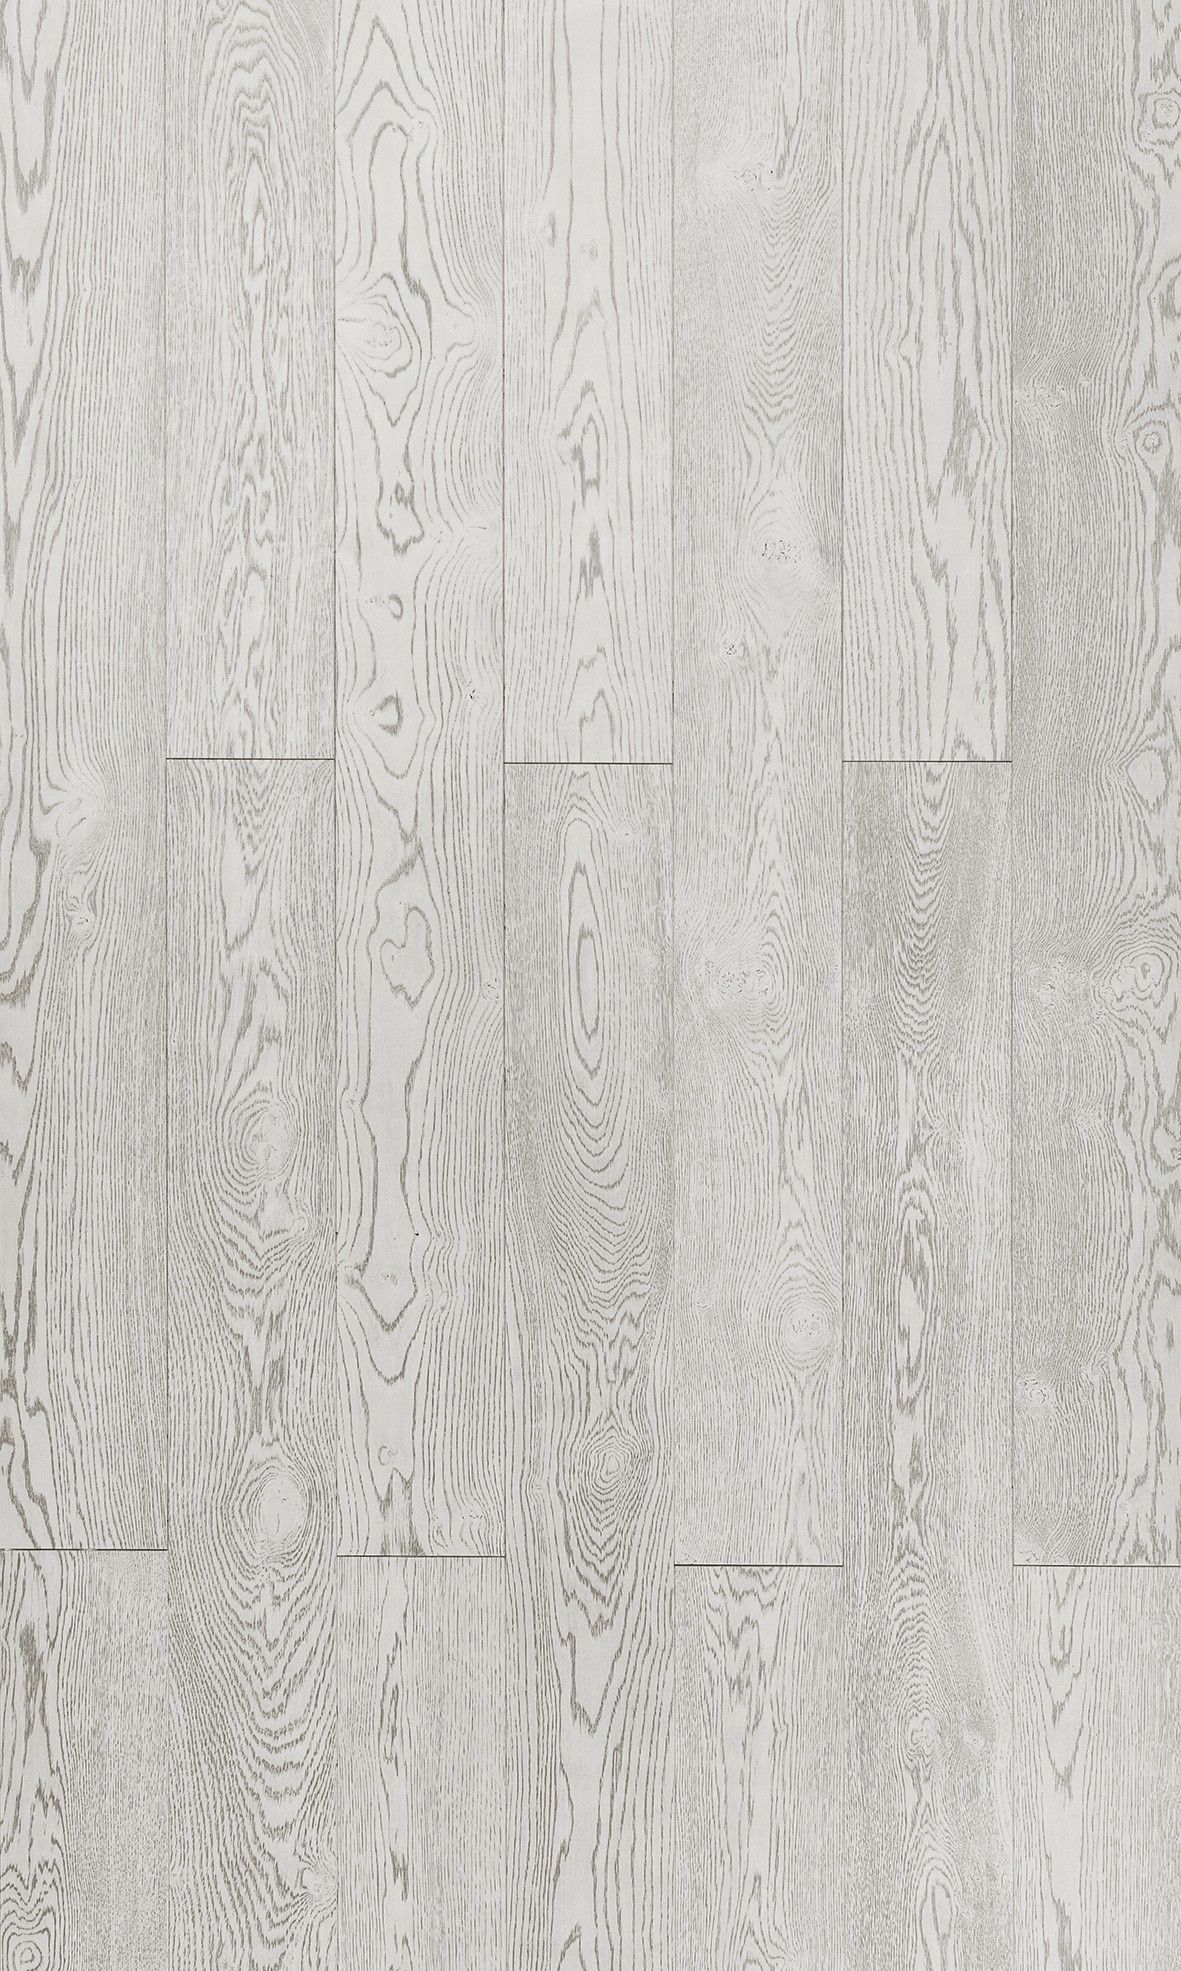 Oak Parquet Industrial Titan Brushed Matt Lacquered Graphic Elegant And Stylish Www Timberwiseparque Wood Tile Texture Wood Floor Texture Grey Wood Texture